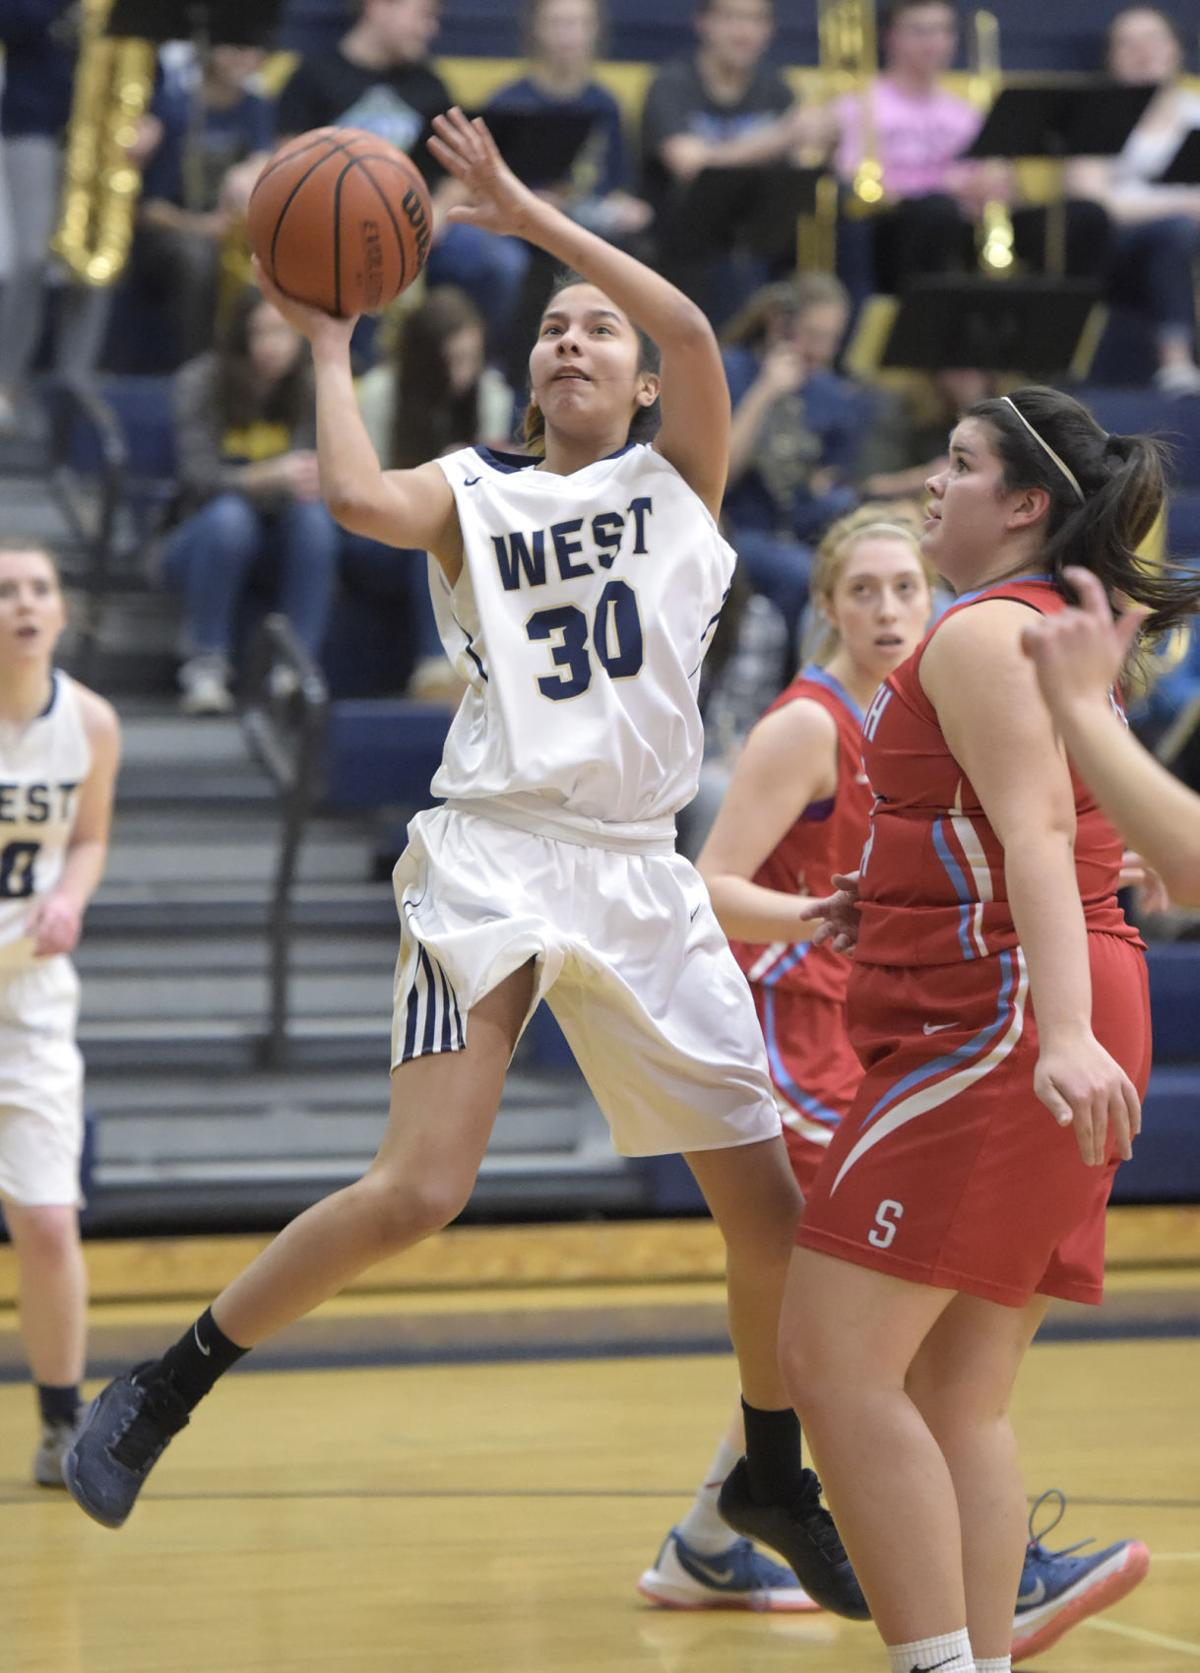 West Albany Girls Basketball-1.jpg